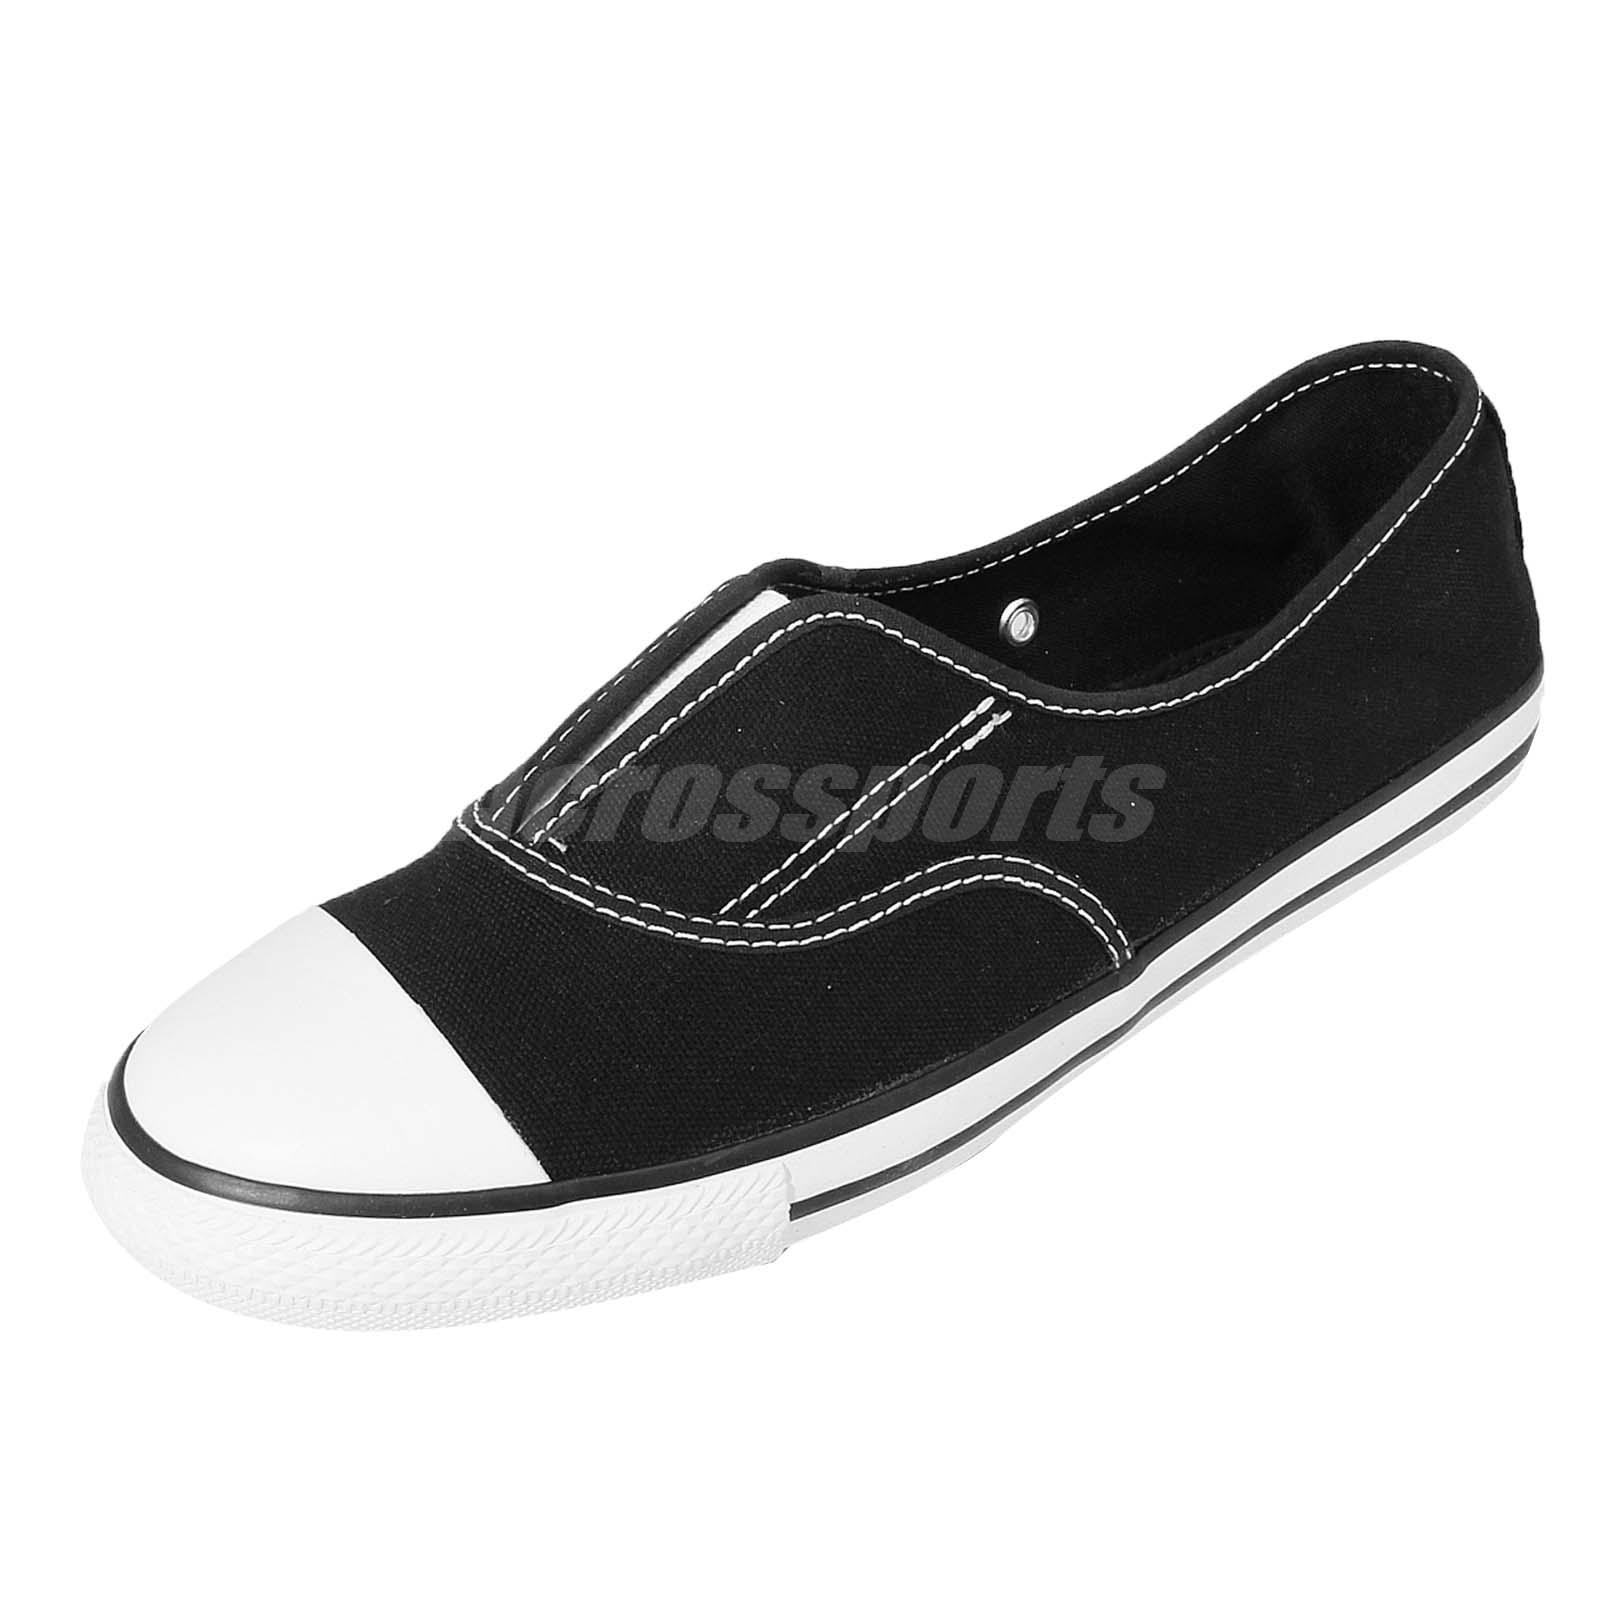 Converse chuck taylor all star cove black white womens slip casual size chart geenschuldenfo Choice Image